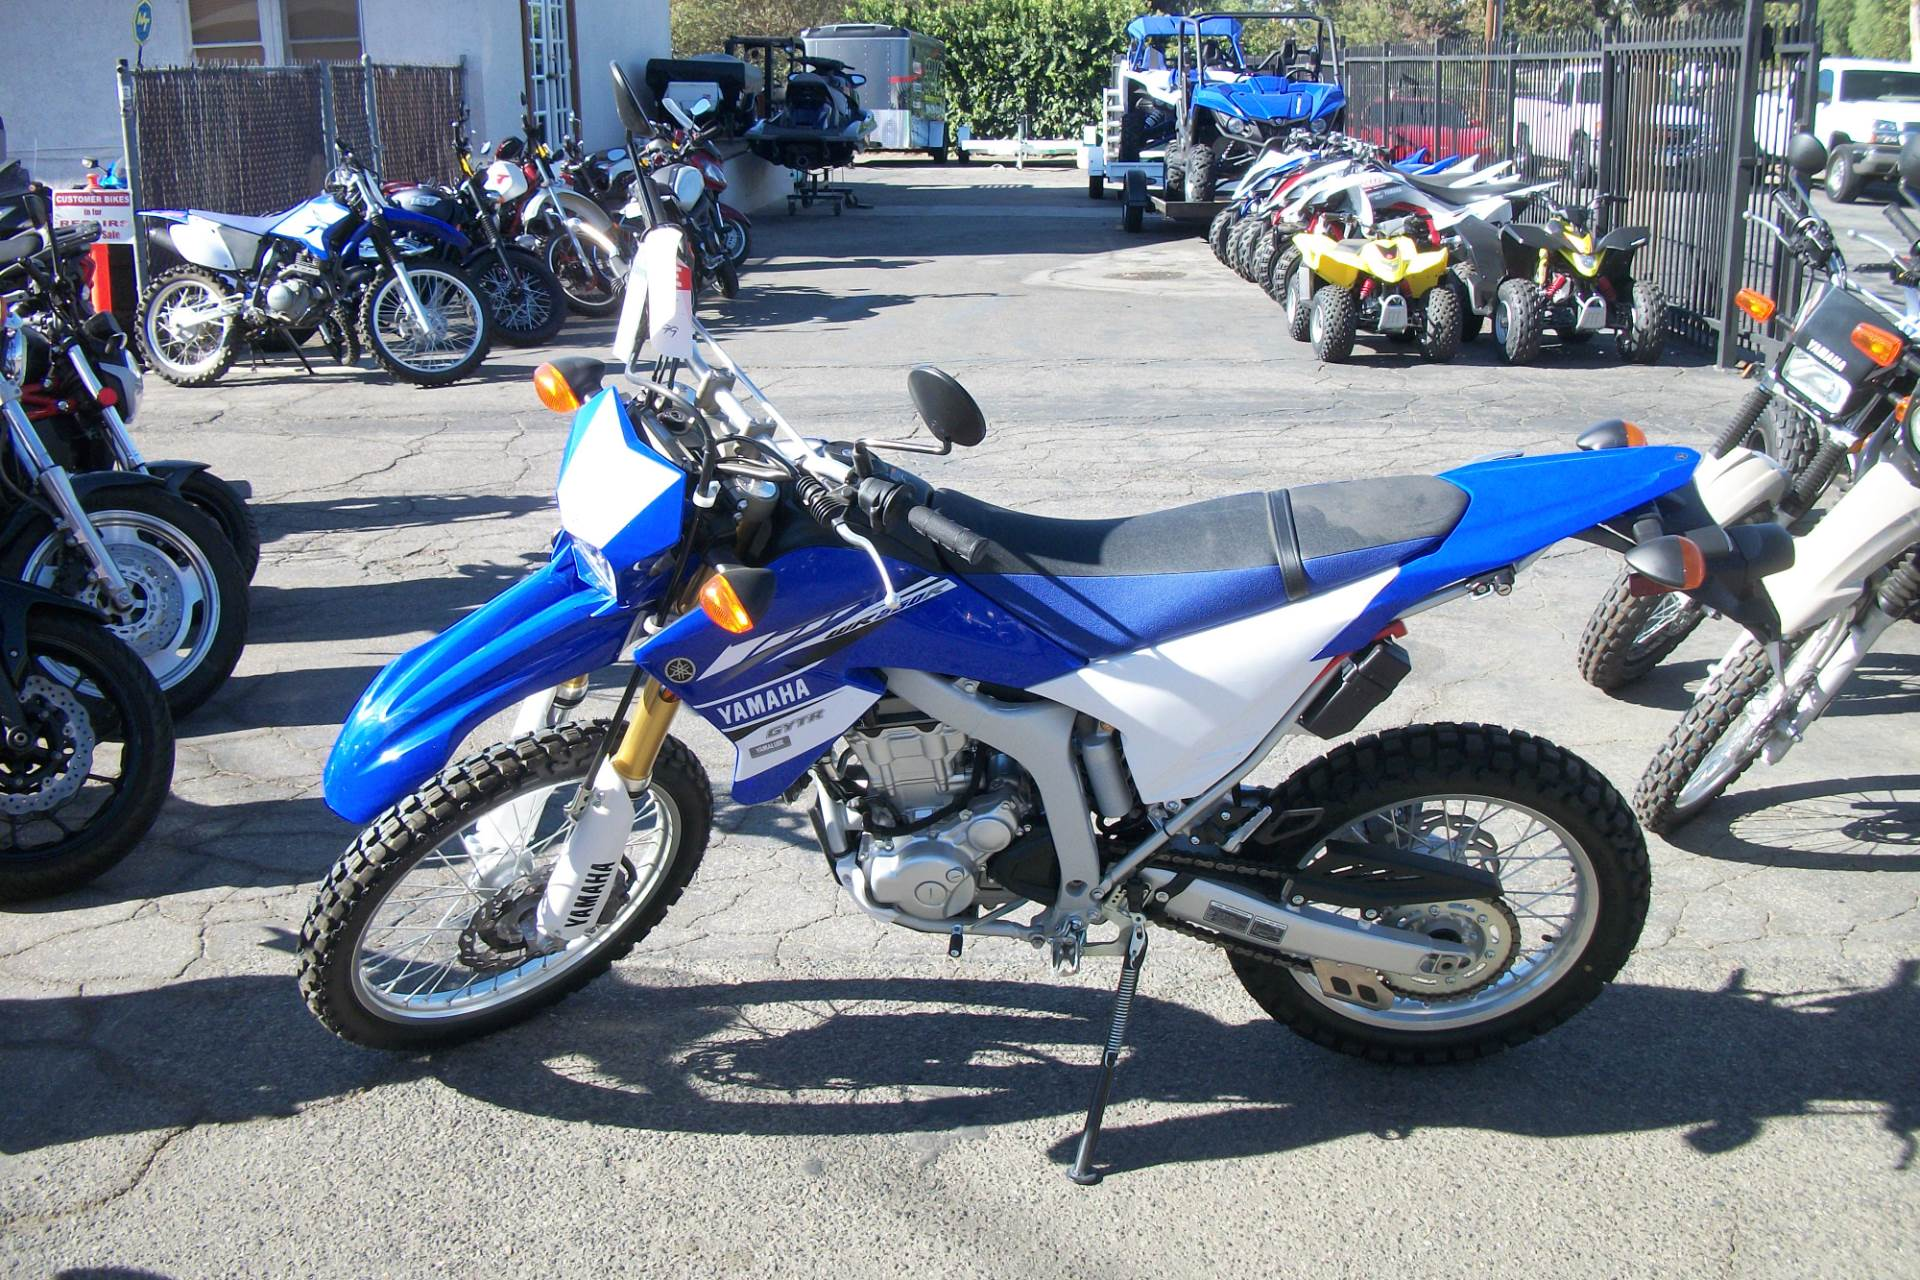 New 2018 yamaha wr250r motorcycles in simi valley ca for 2018 yamaha wr250r